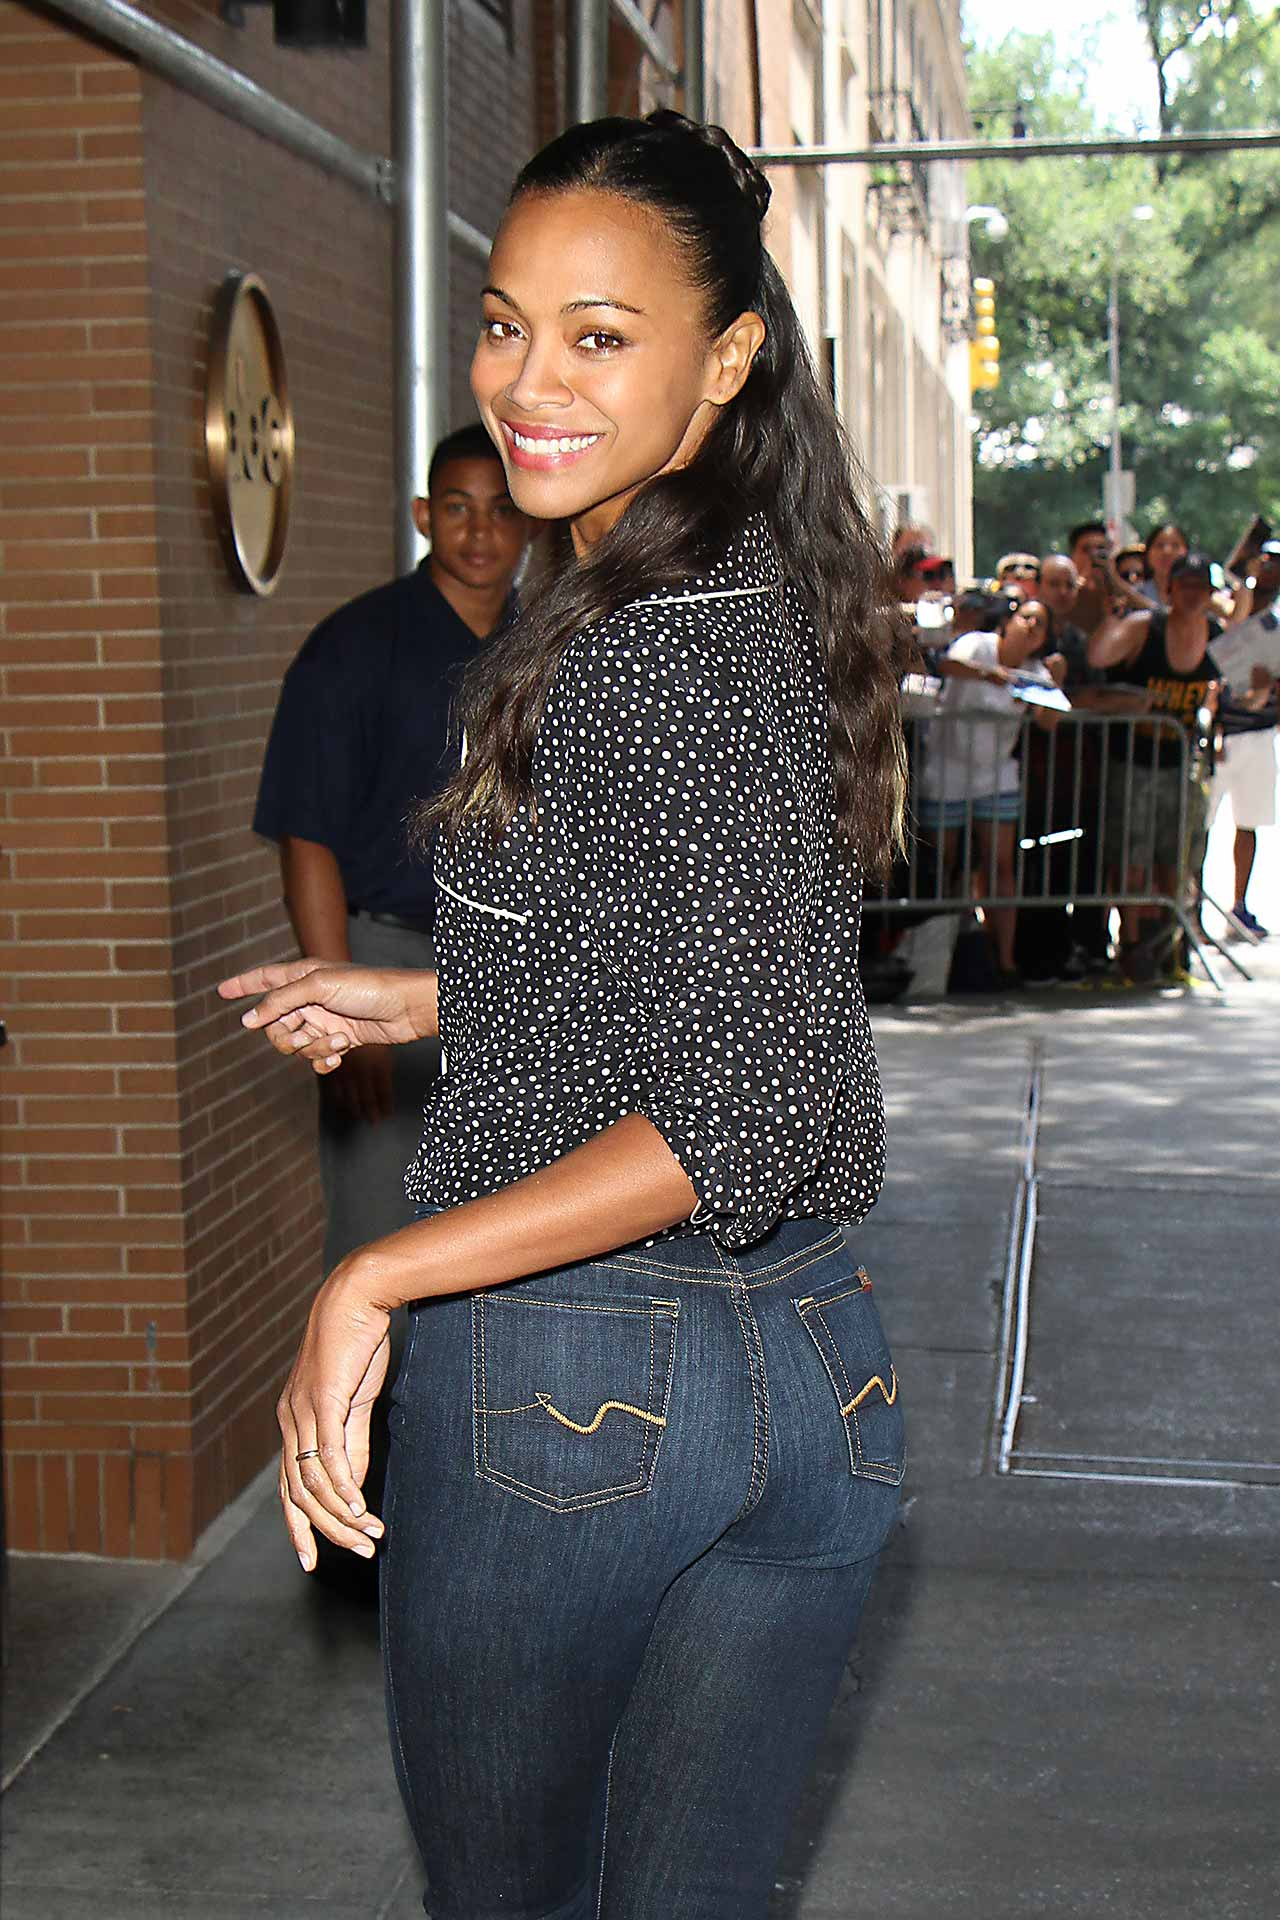 zoe-saldana-7-for-all-mankind-(b)air-denim-jeans